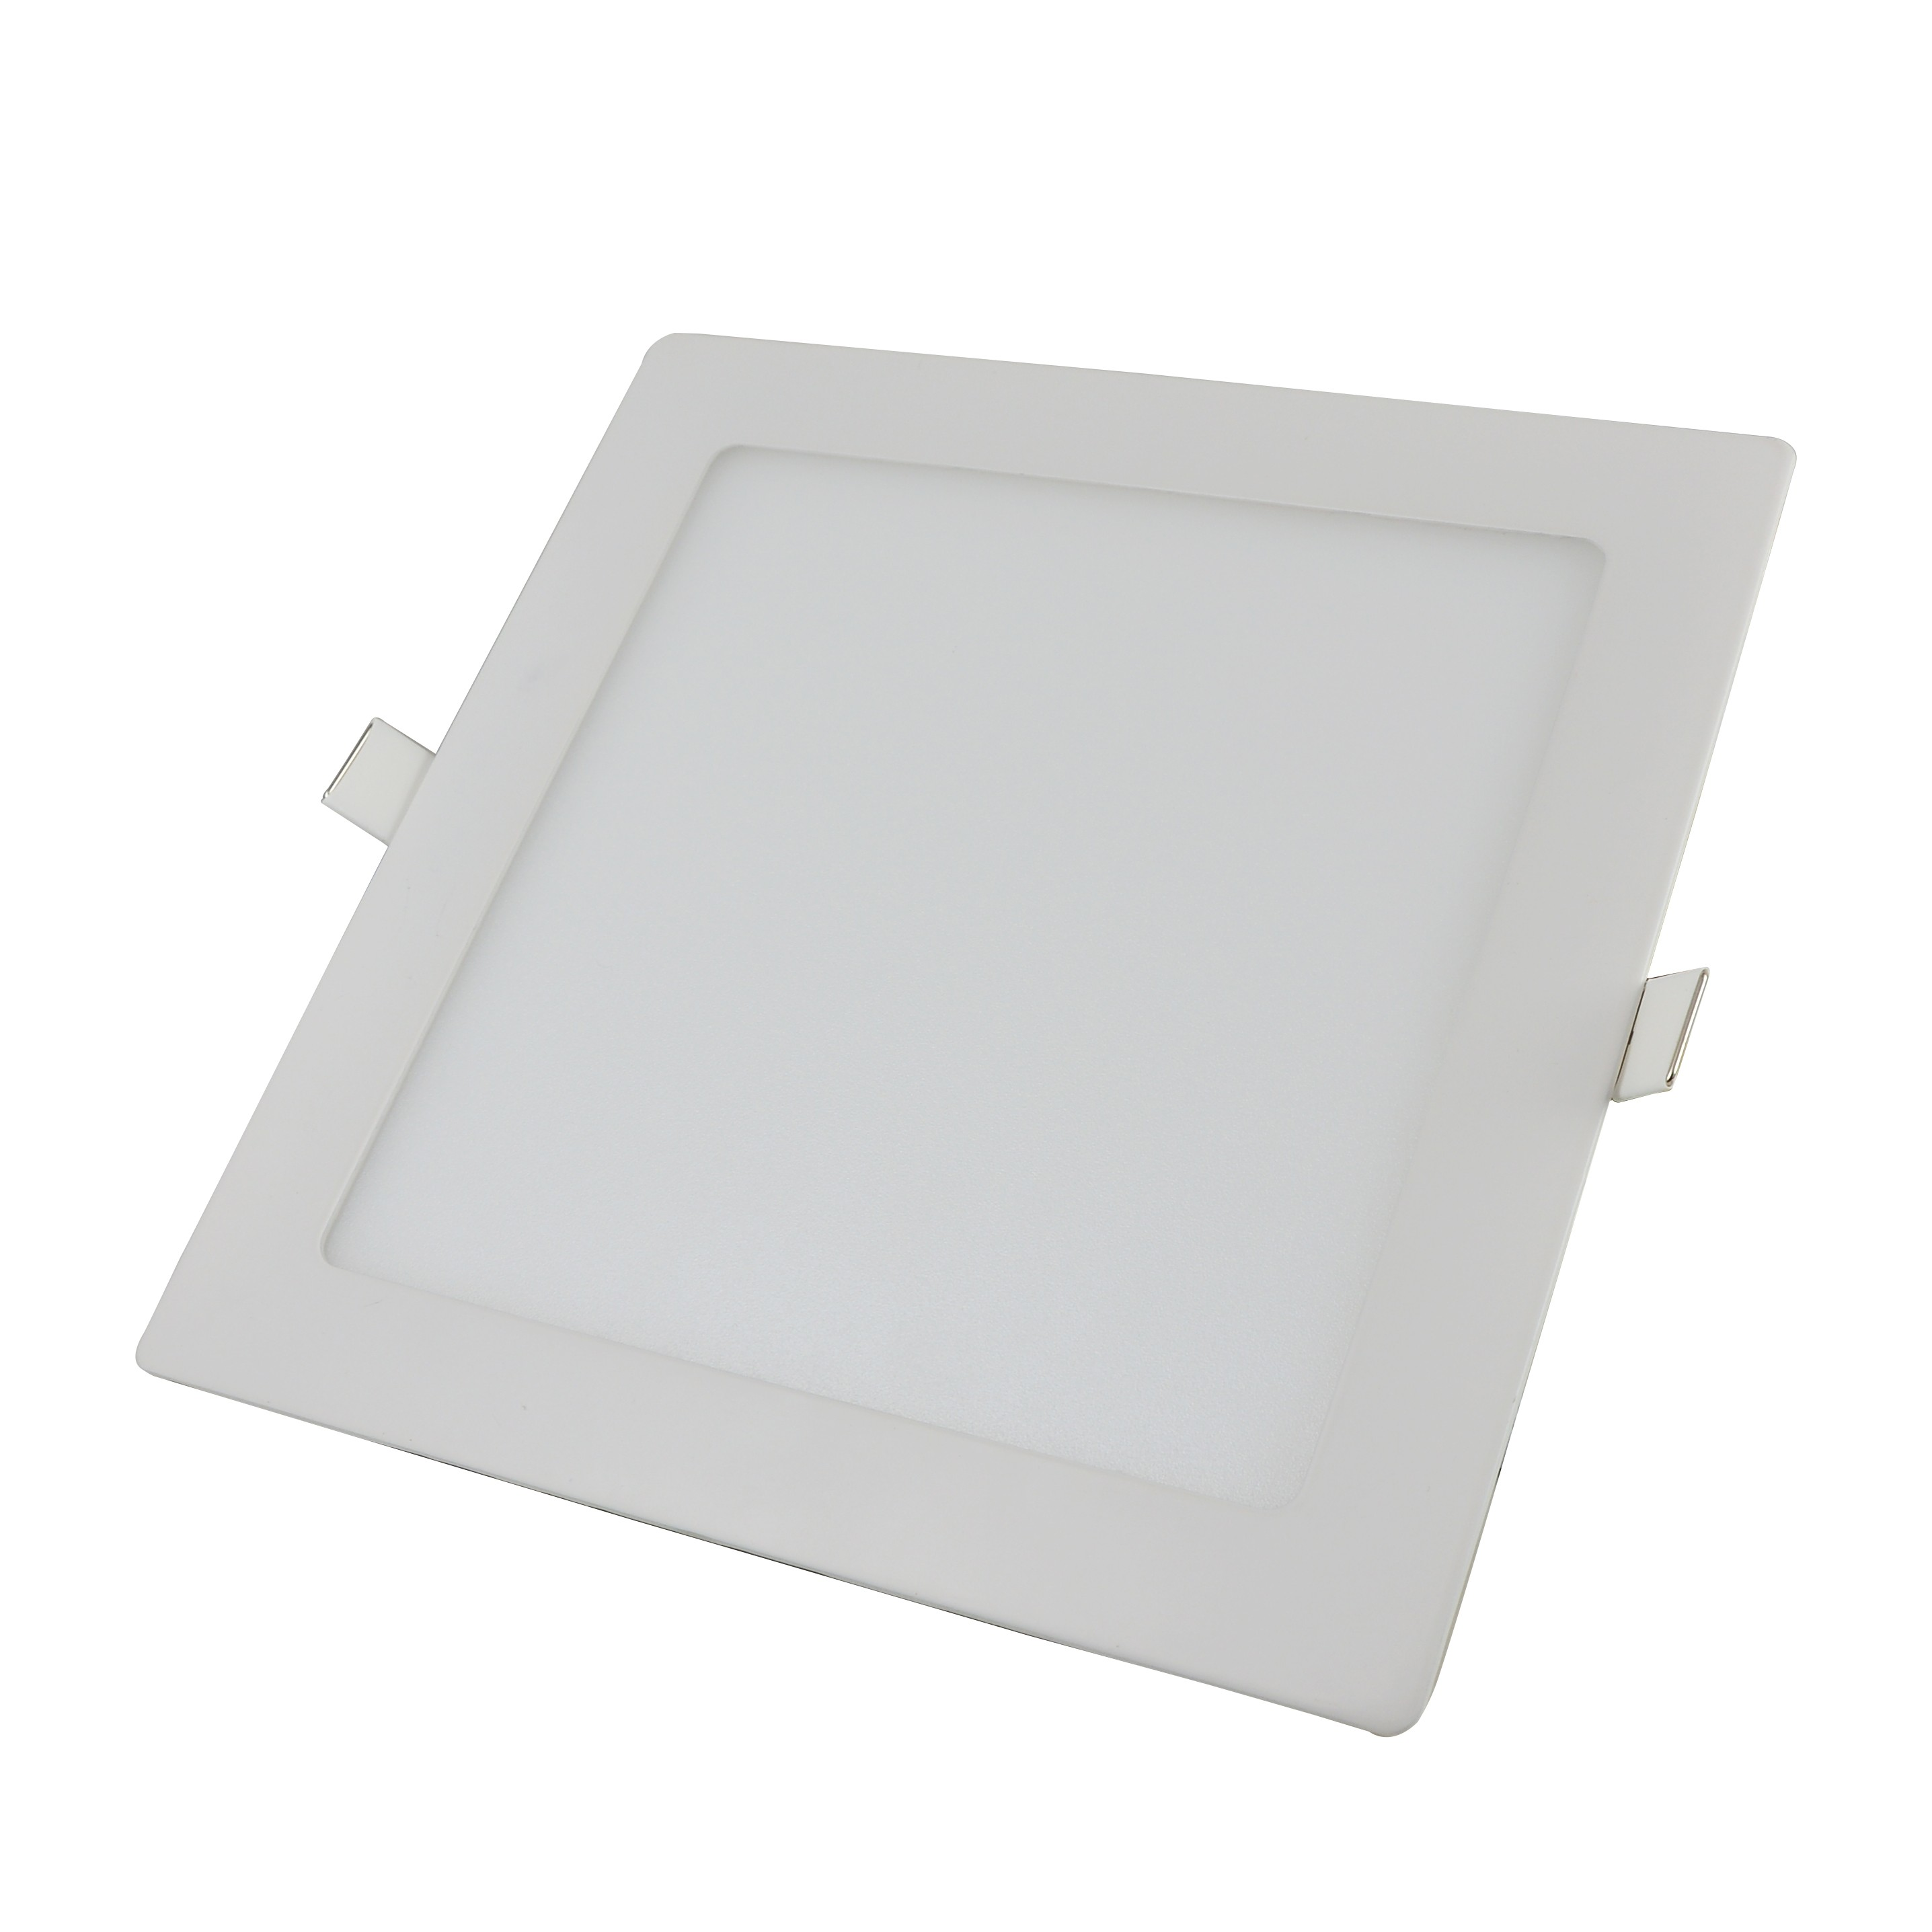 Mengsled Mengs 18w Square Led Recessed Ceiling Panel